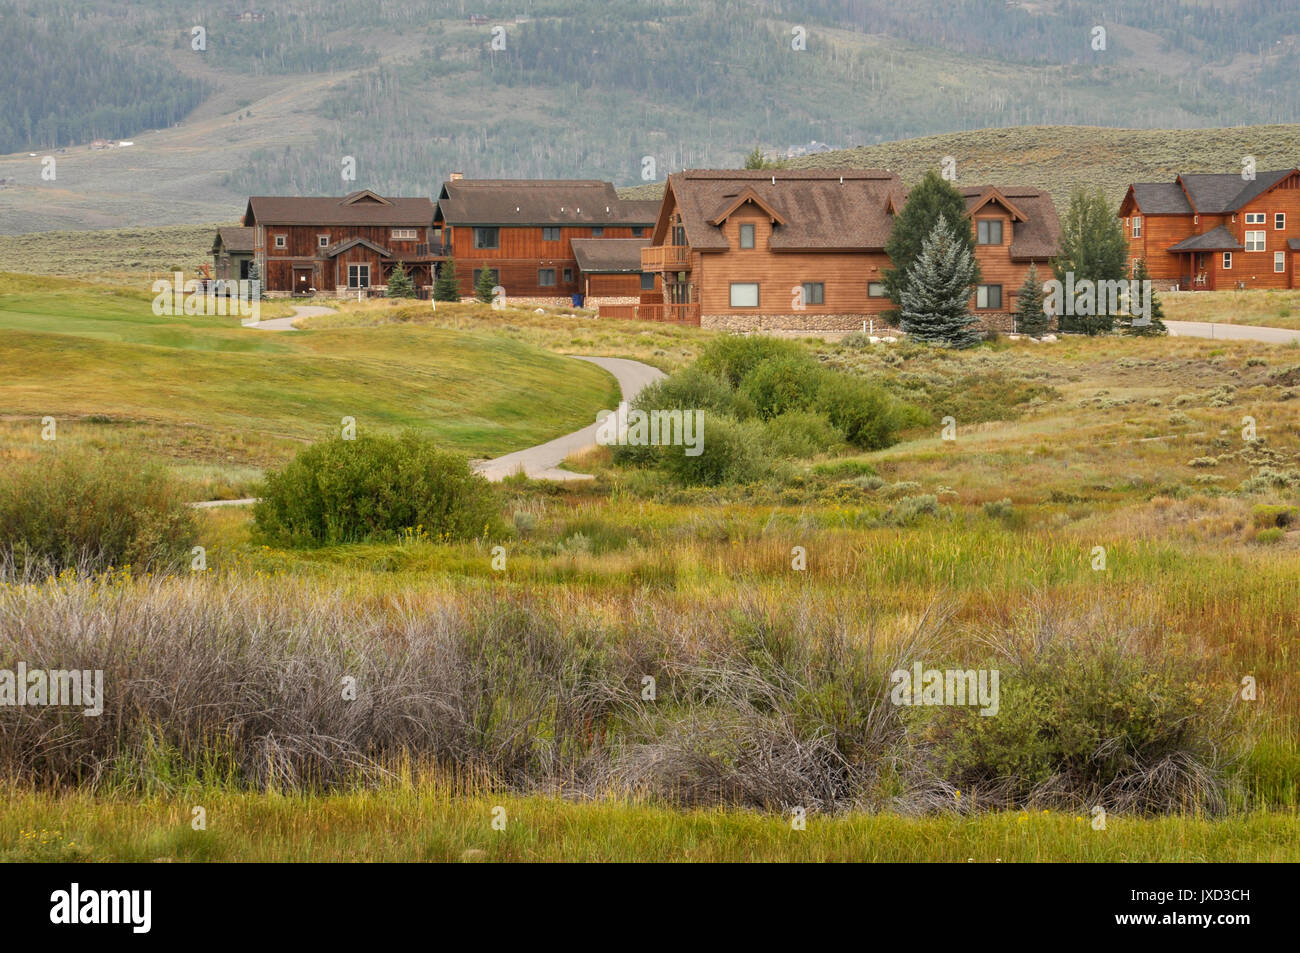 Granby, CO   August 12: Typical Wood Style Homes In Rural ...